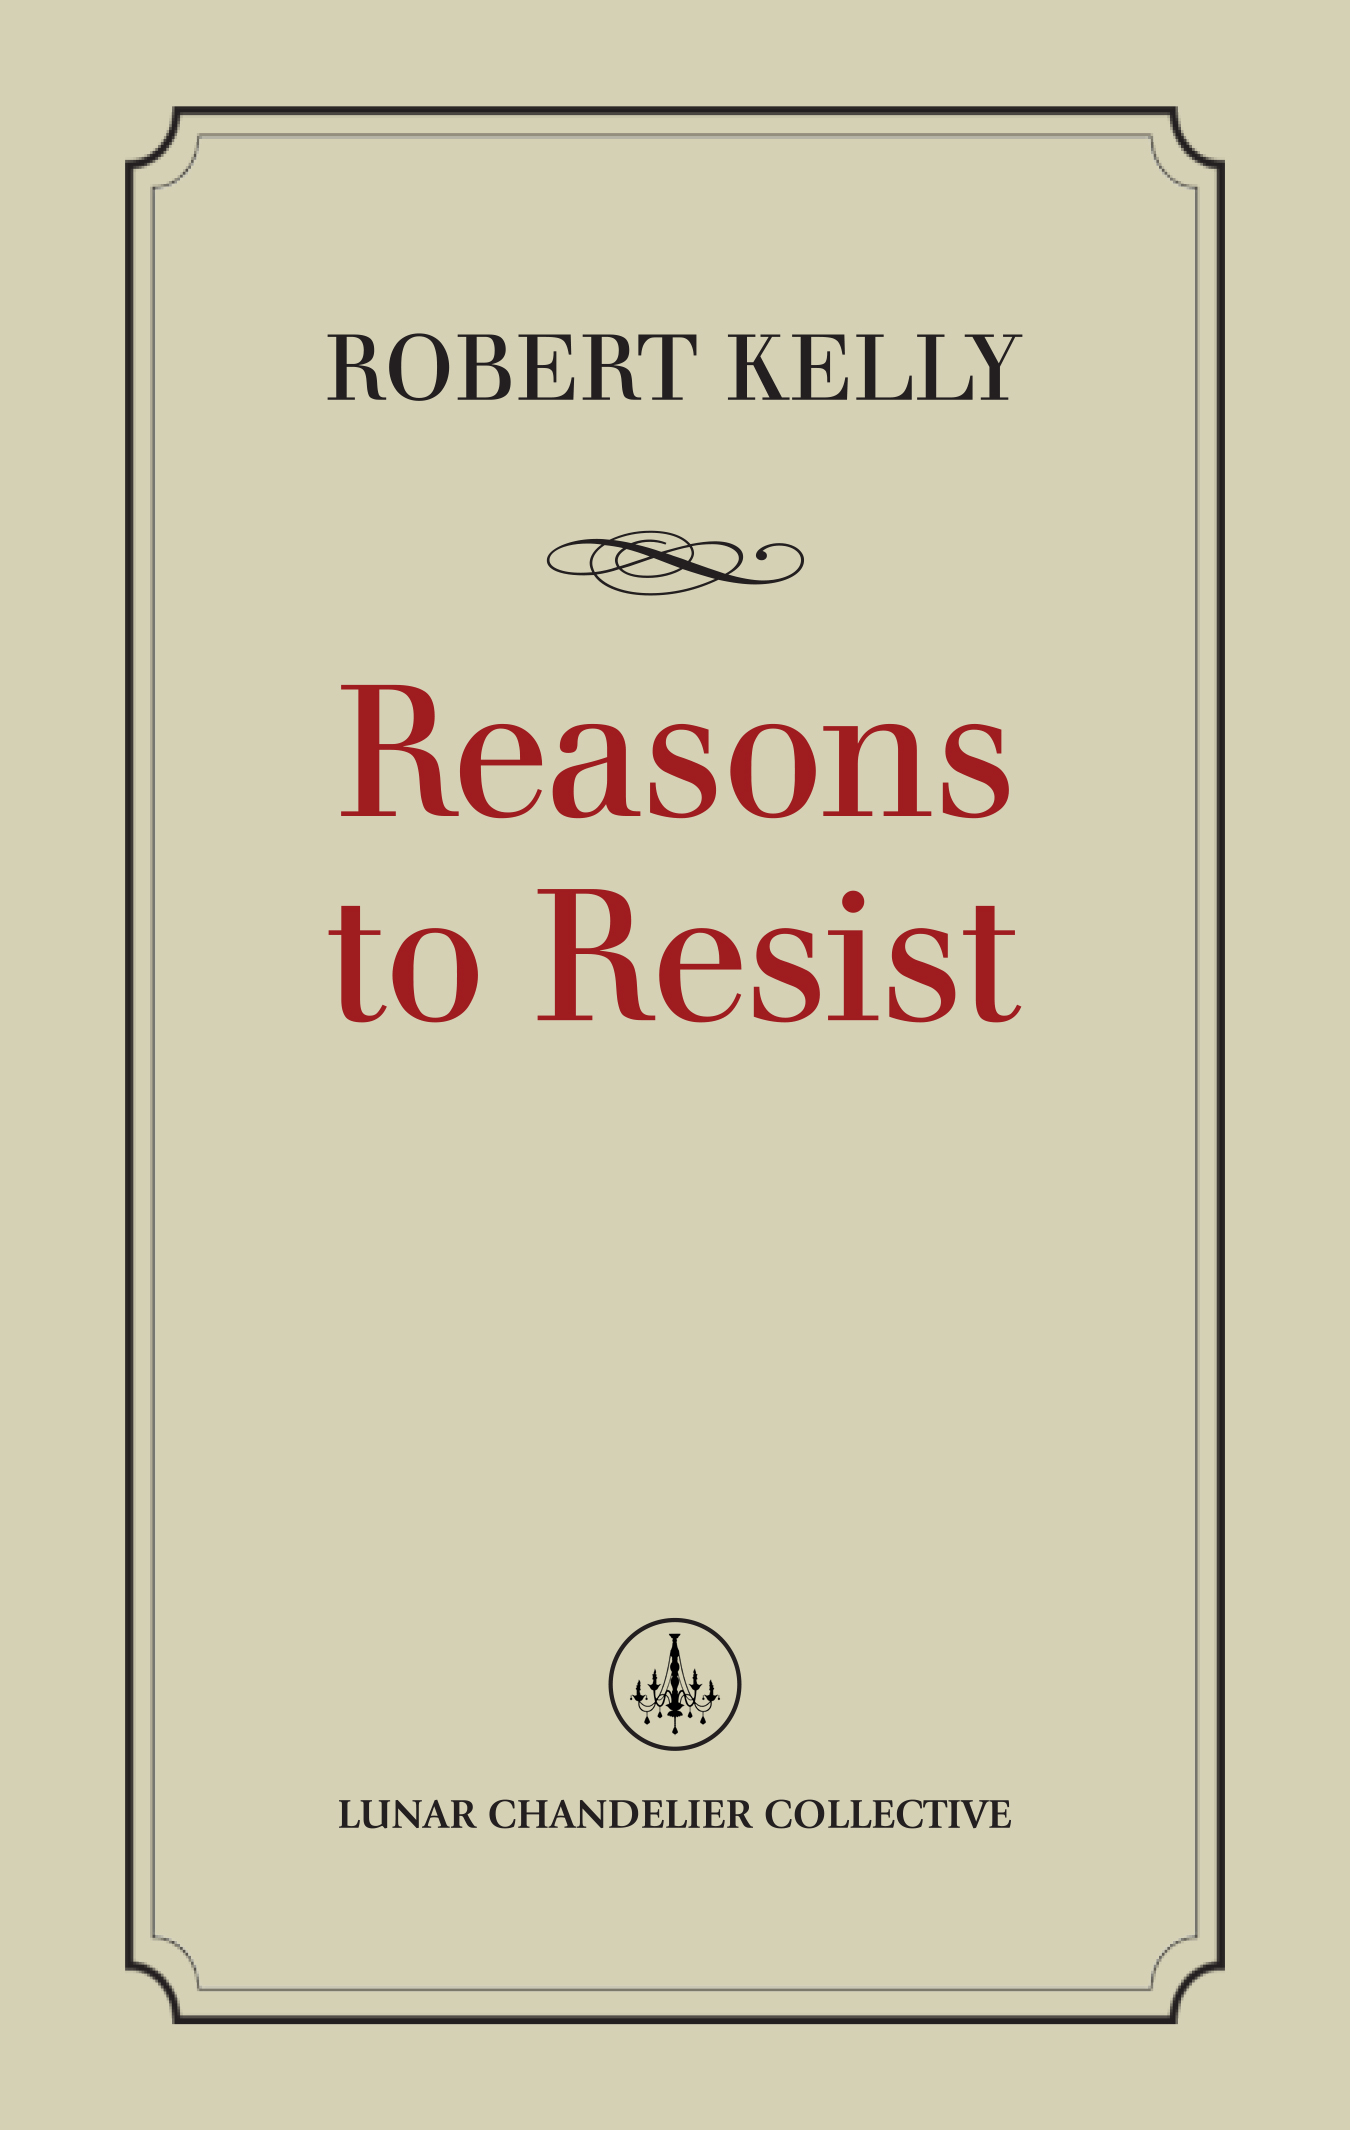 Reasons to Resist